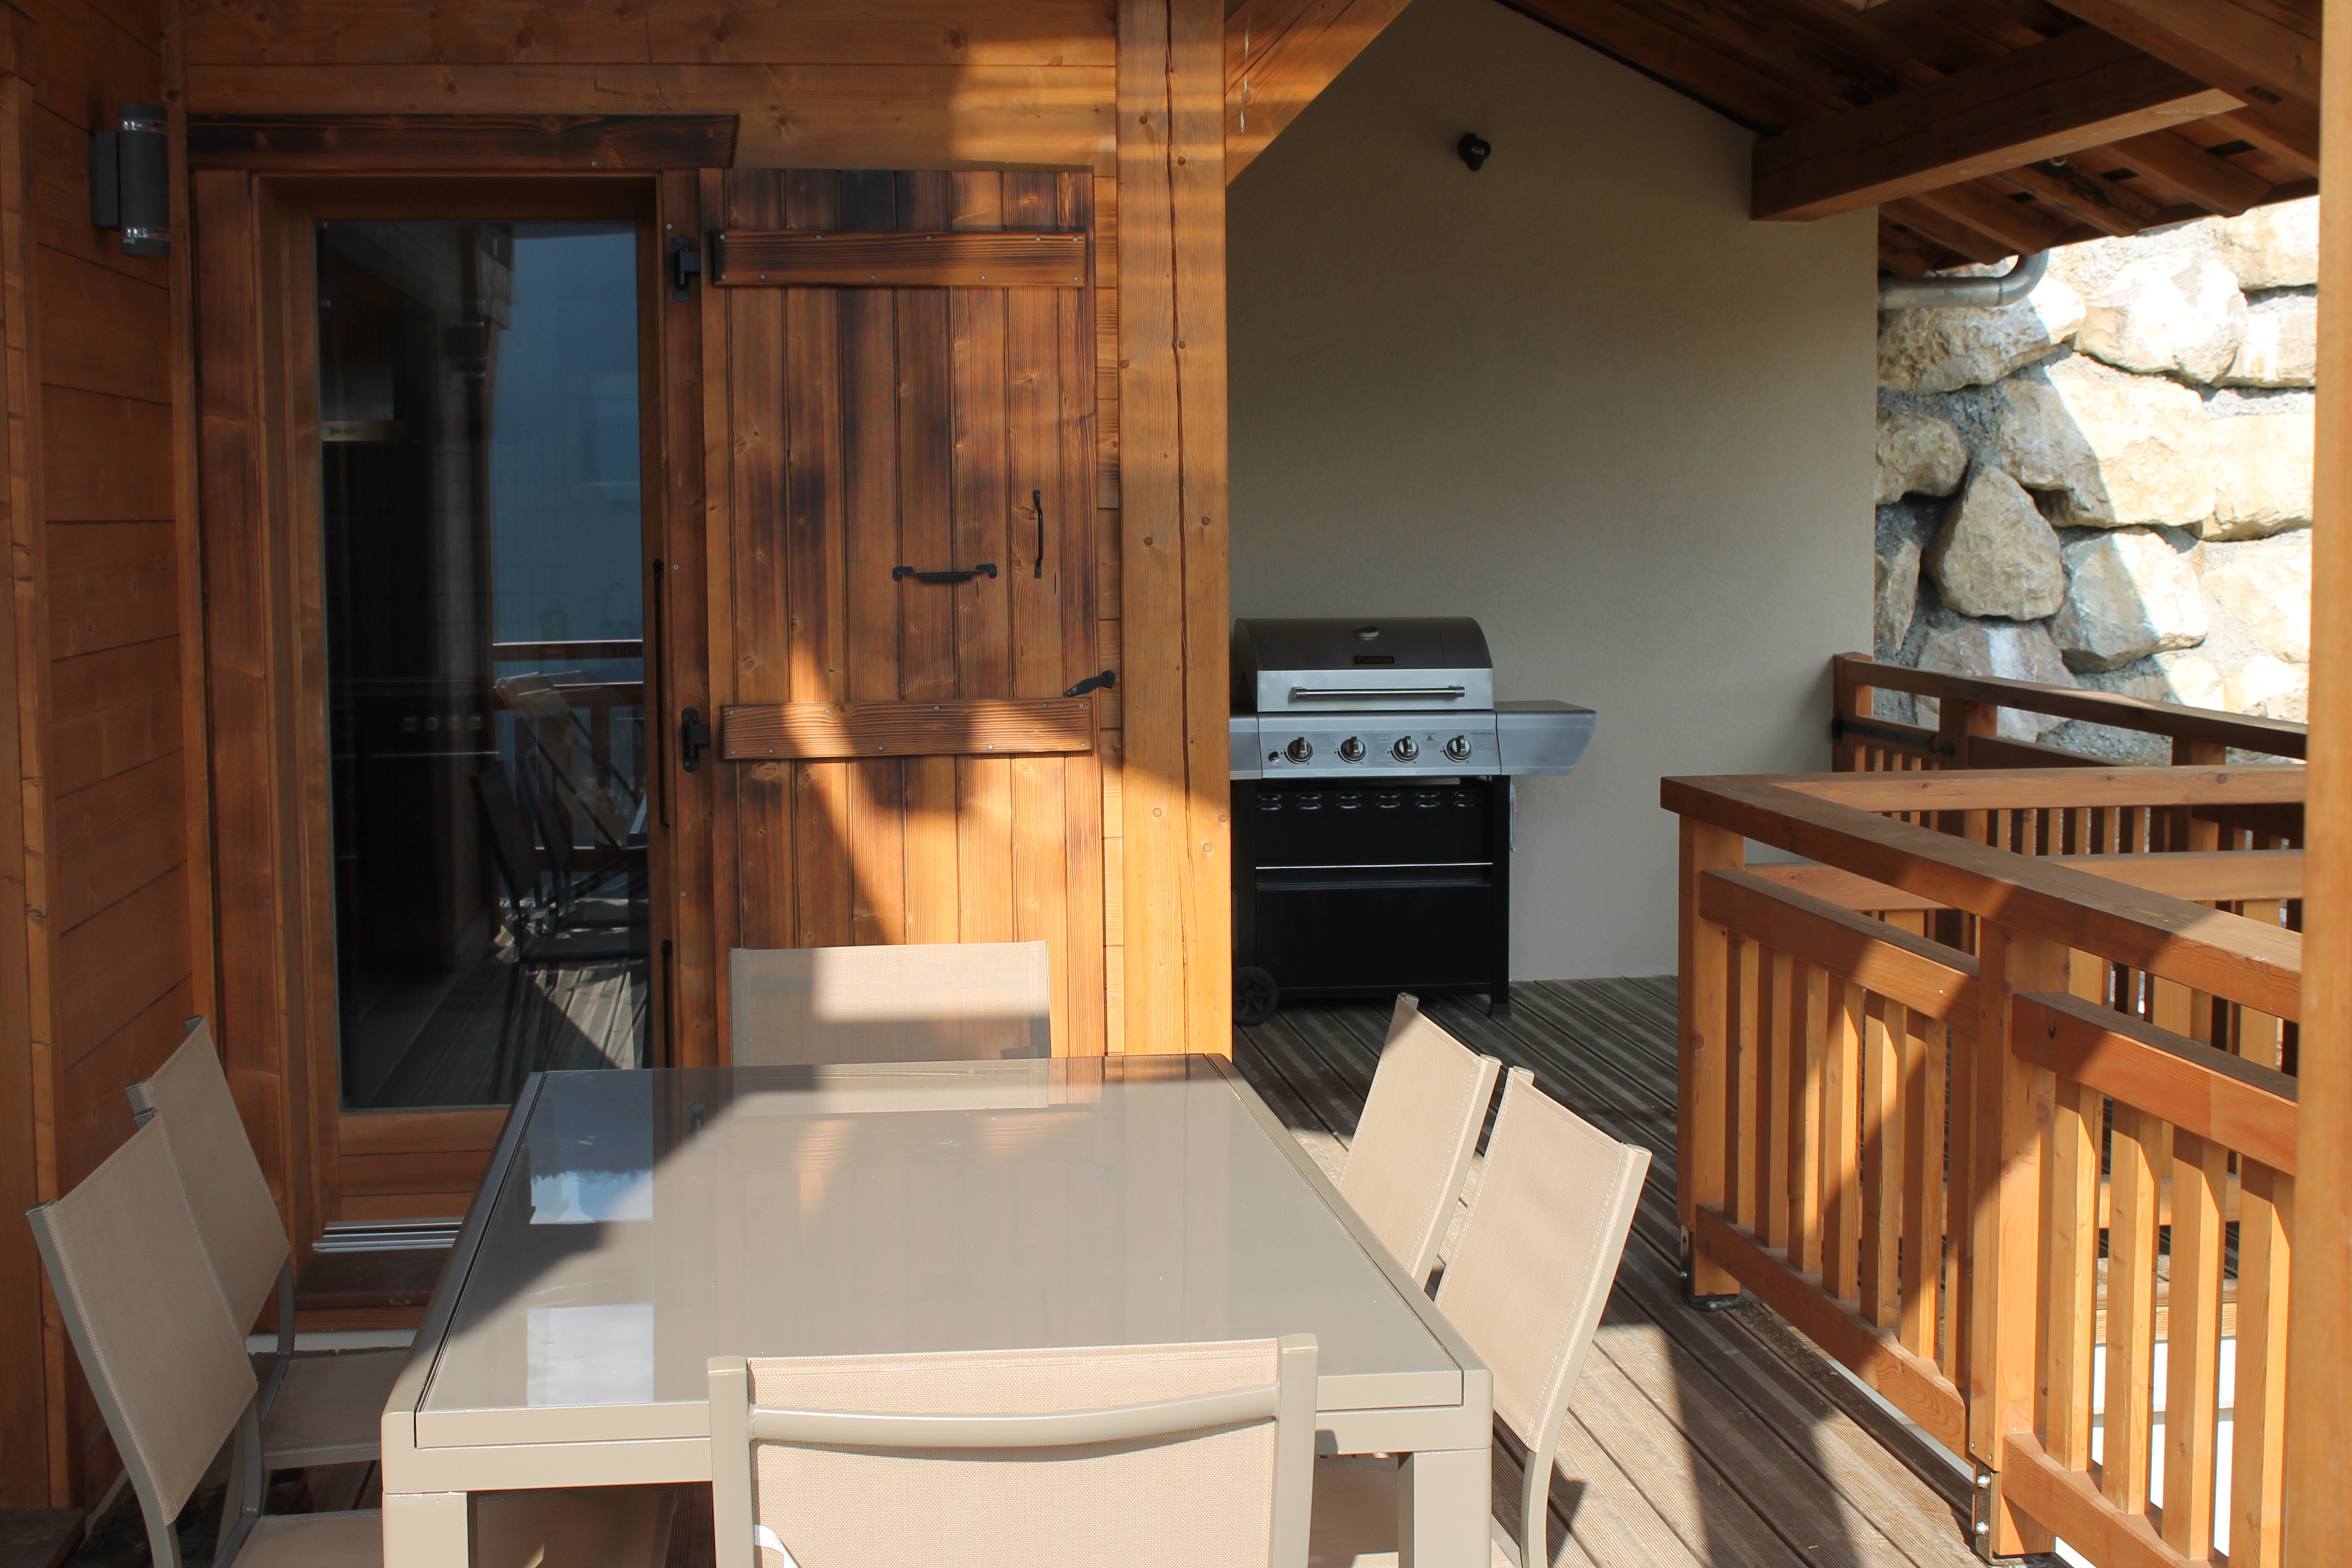 Terrace barbecue area